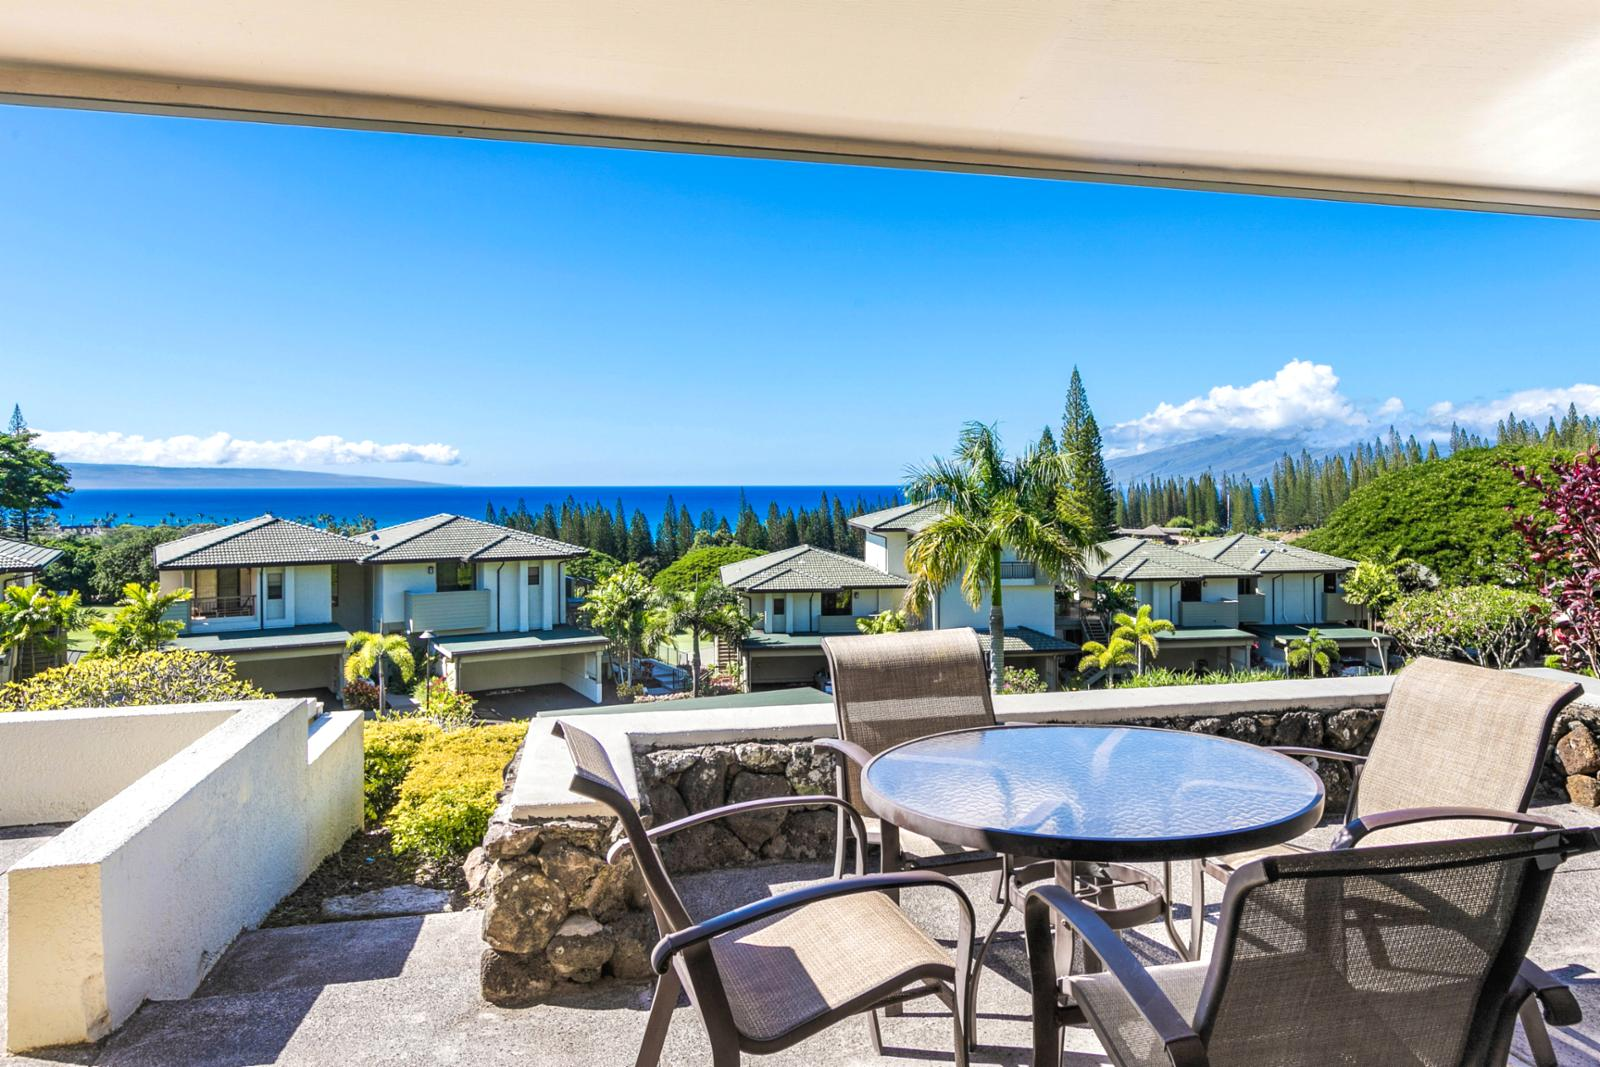 View the entrance of your Maui getaway from the lanai!